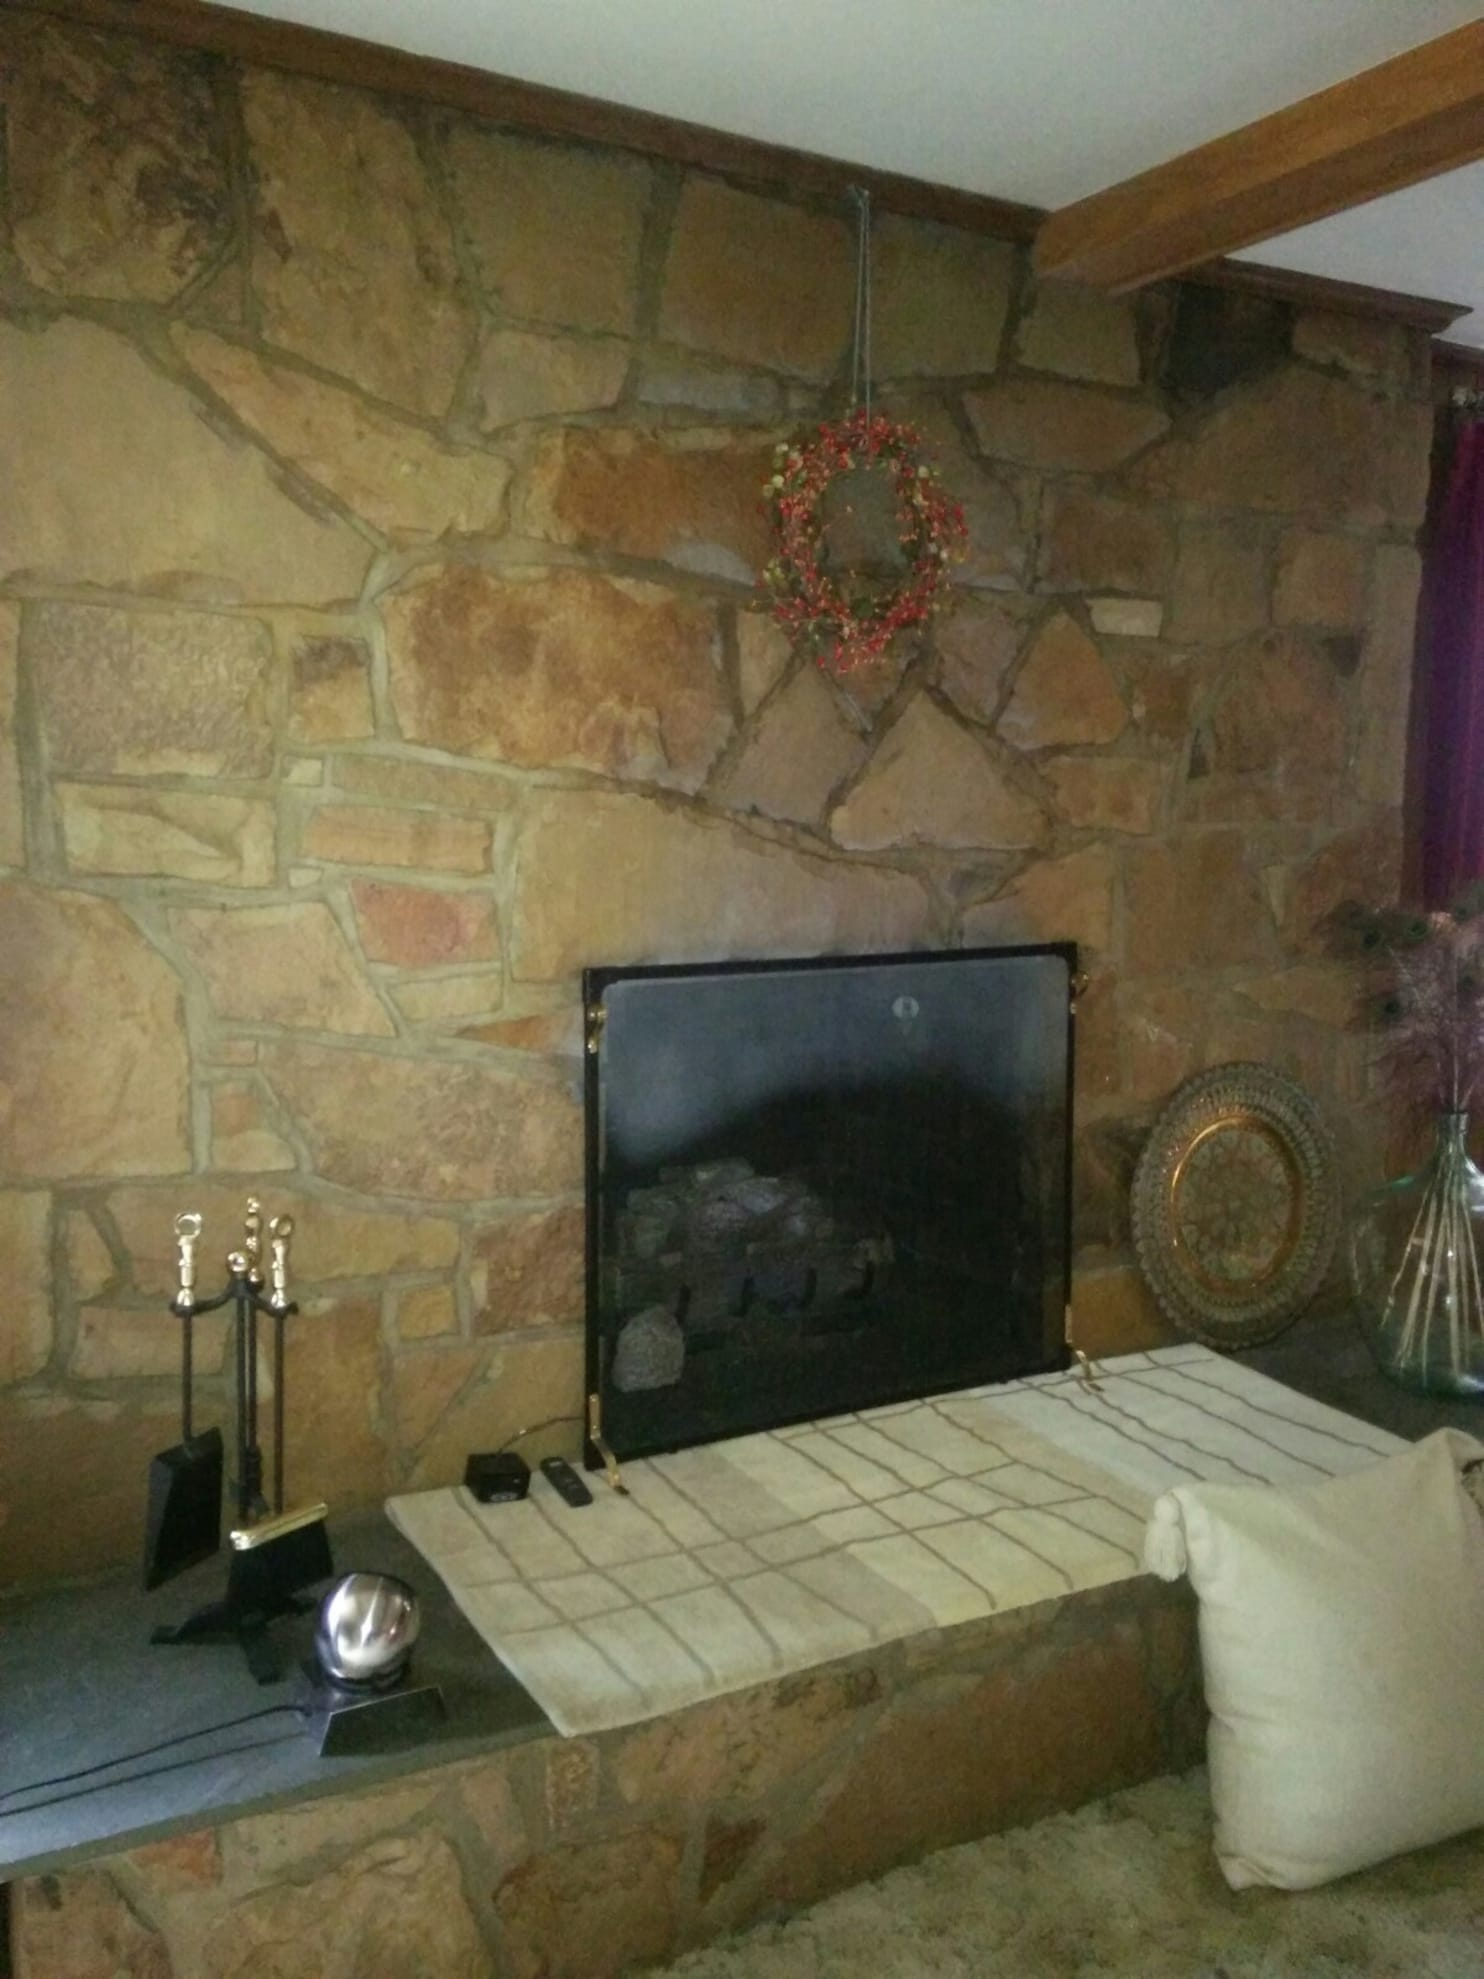 How to update a stonefacade fireplace  The Washington Post